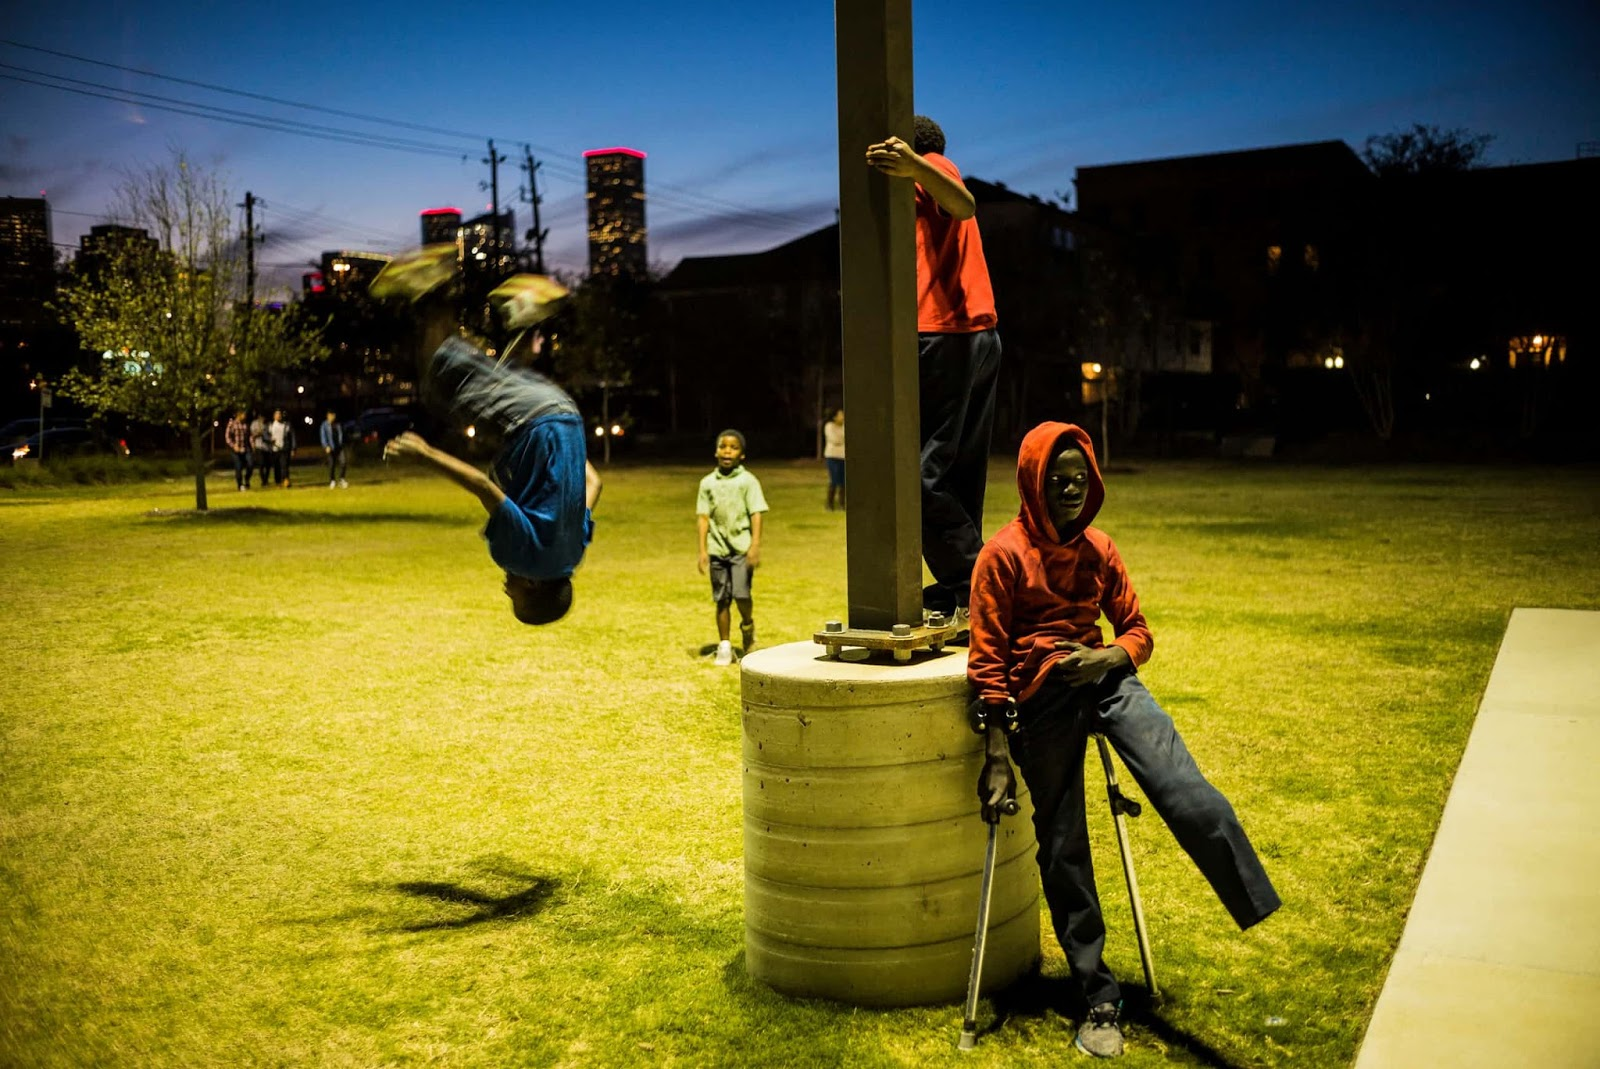 25 Of The Most Intriguing Pictures Of 2017 - Guadalupe Plaza, Houston, US